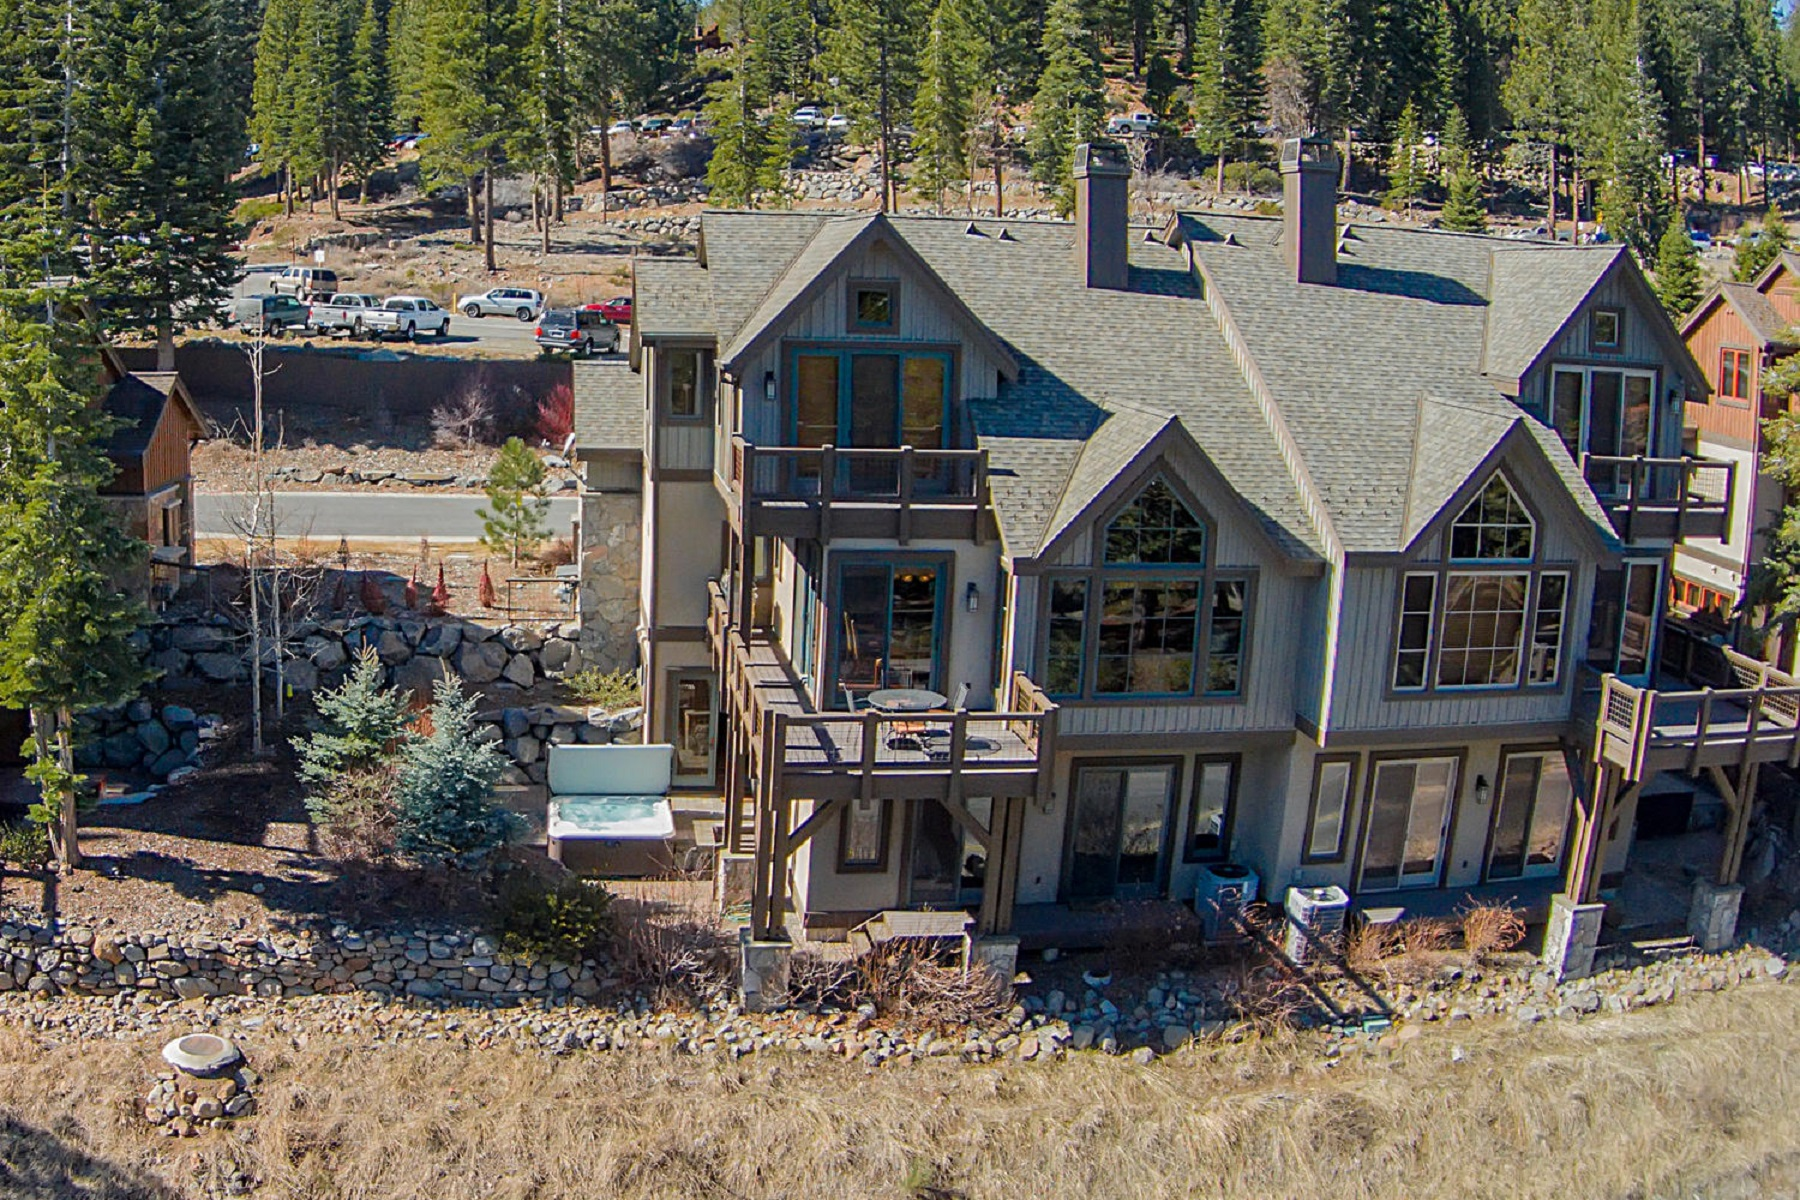 Additional photo for property listing at 7213 Larkspur Court #6, Truckee, CA 7213 Larkspur Court #6 Truckee, California 96161 United States